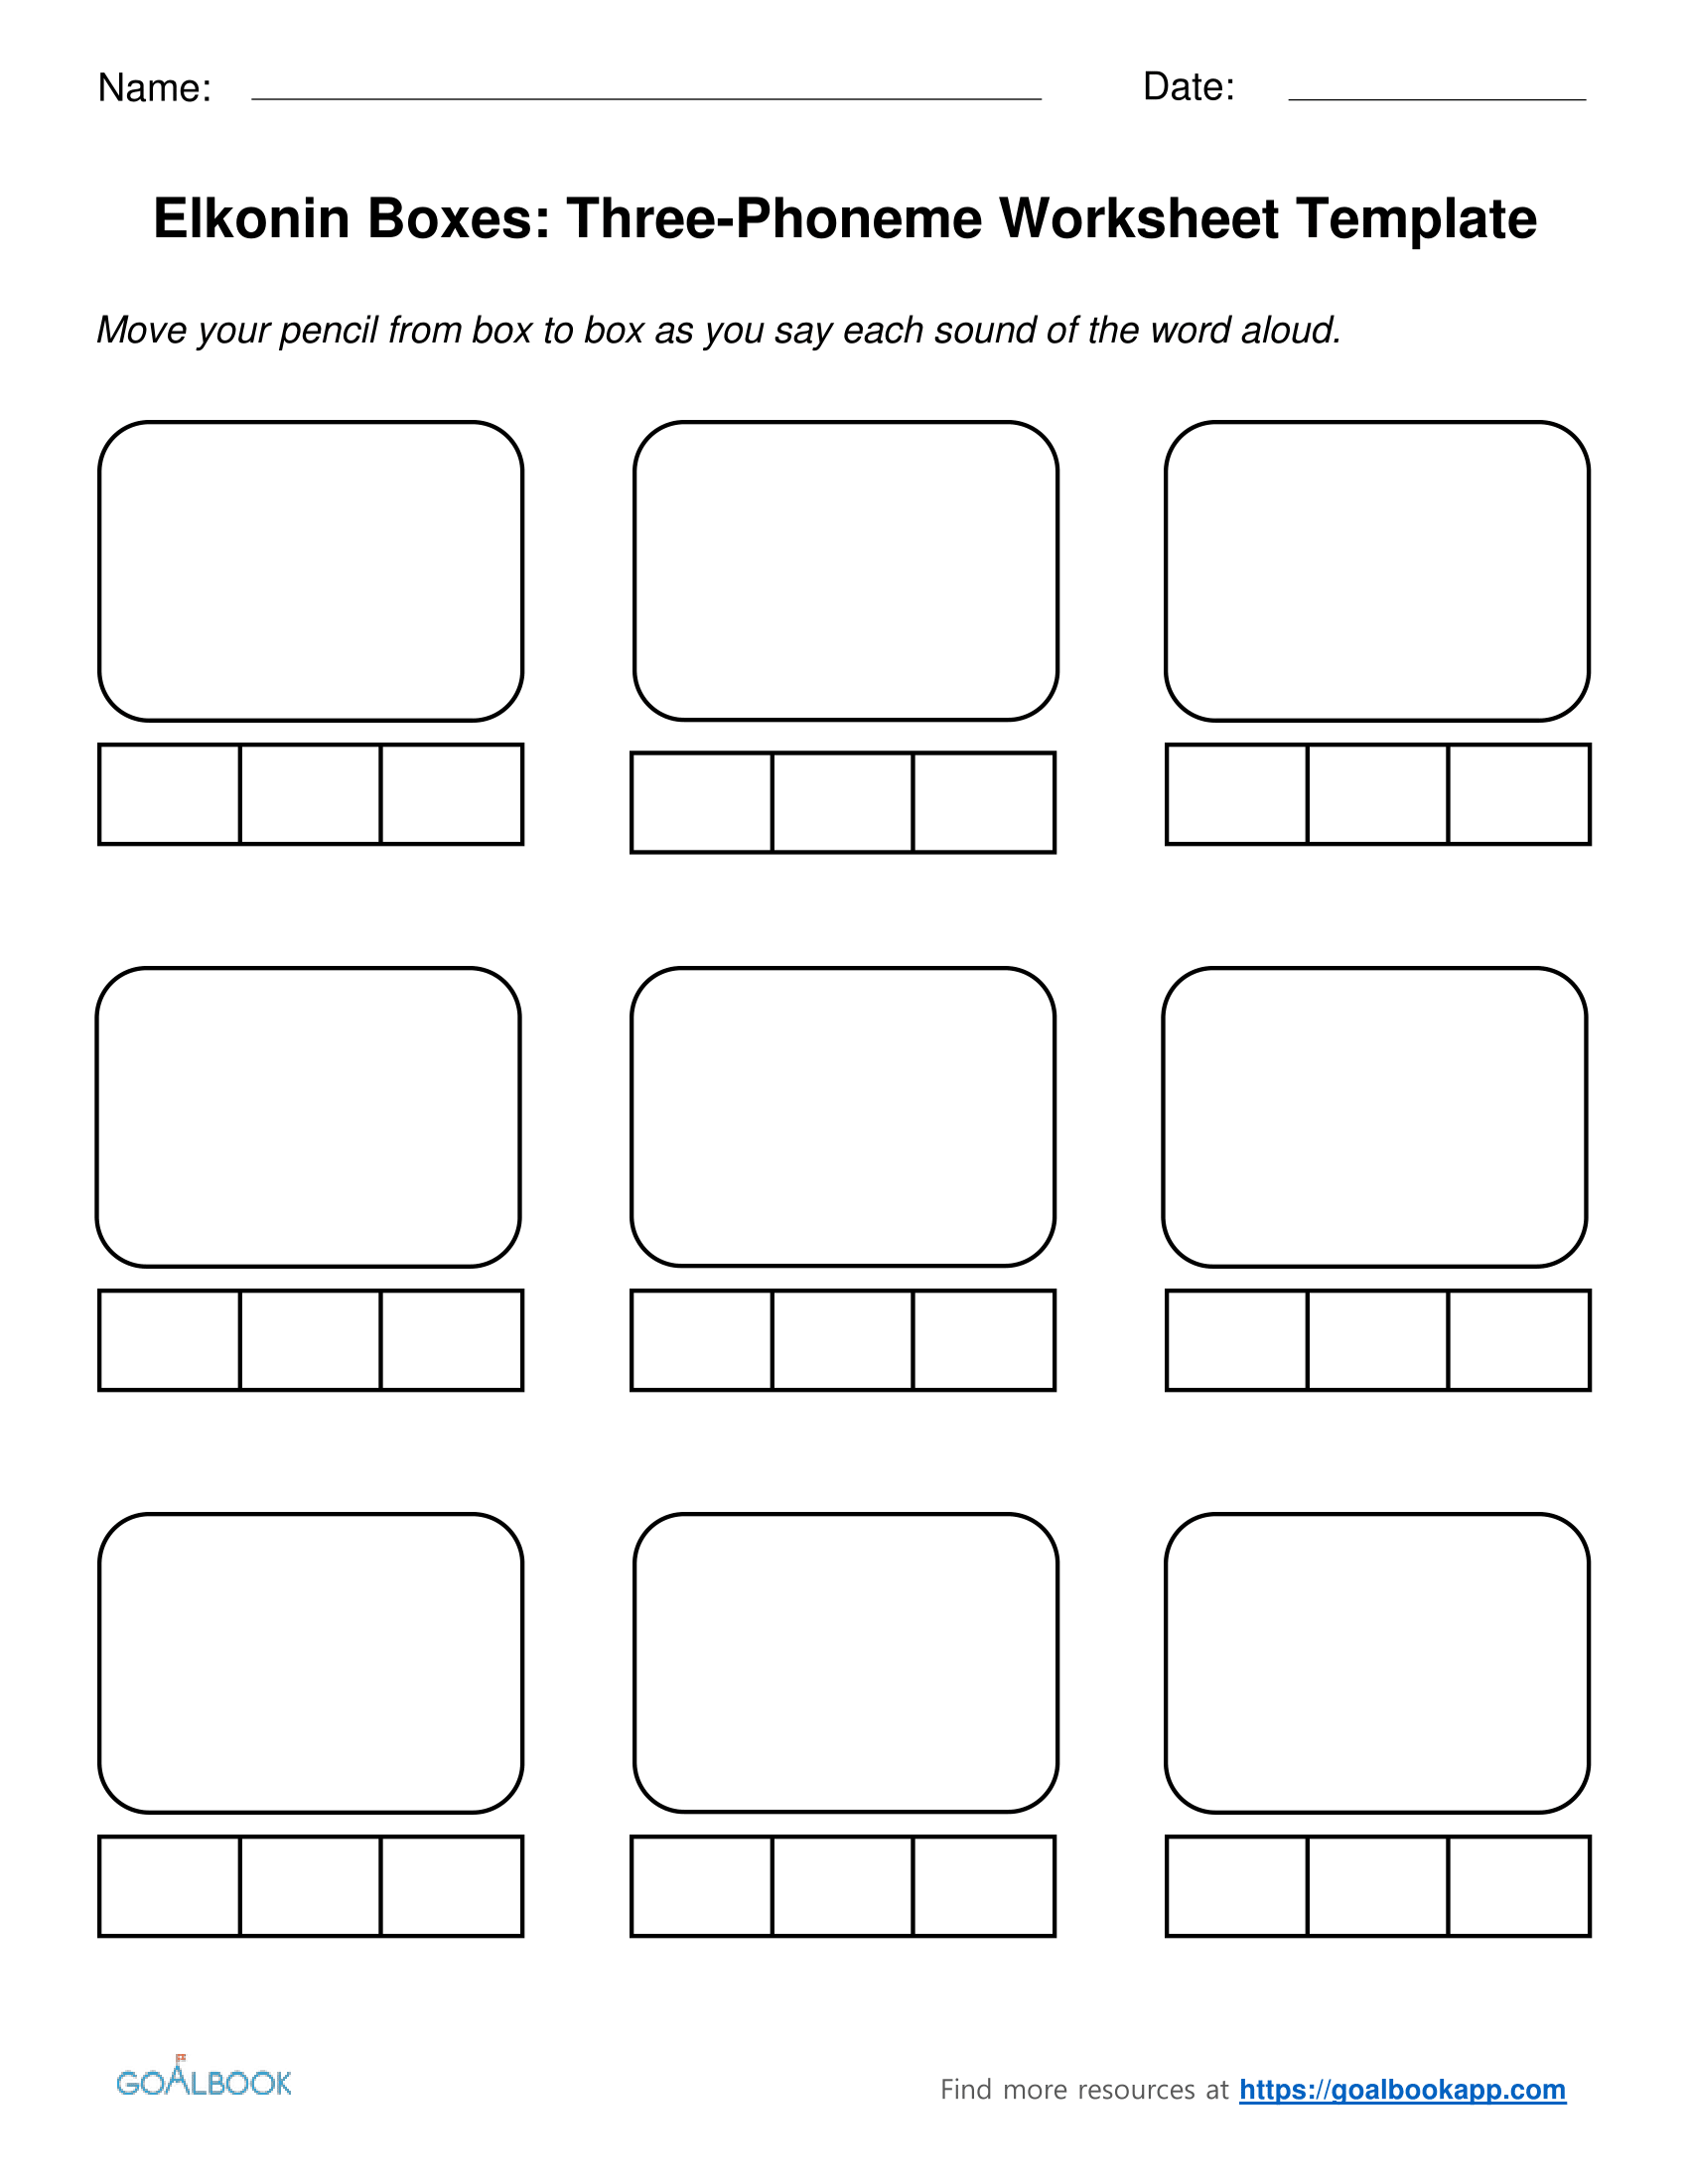 worksheet Phoneme Segmentation Worksheets three phoneme elkonin boxes and worksheets goalbook pathways enlarge